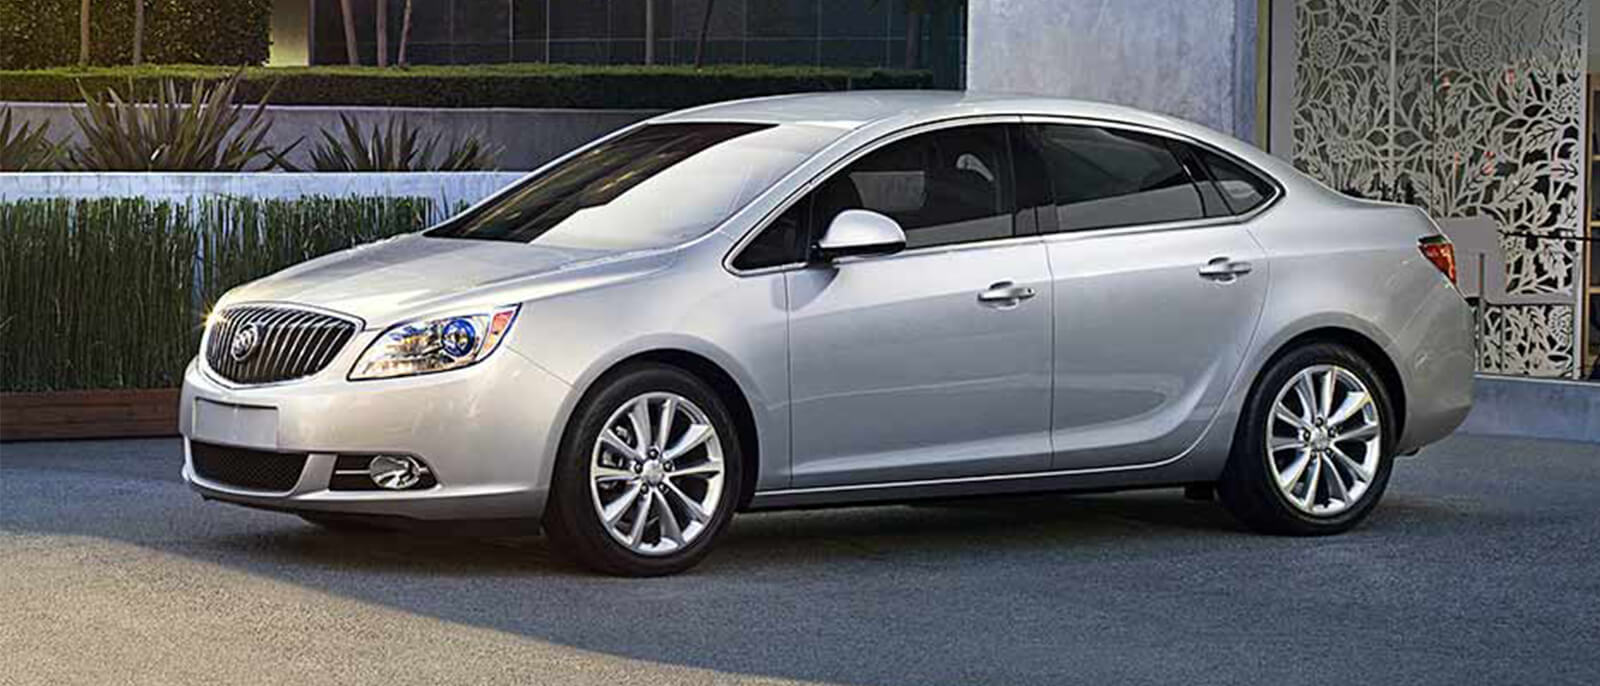 2017 Chevrolet Prisma besides Mercedes Generation Eq Suv Concept Previews Electric Suv additionally 2017 Chevrolet Colorado Zr2 First Drive Best Worlds also Laguna 2015 furthermore Tesla Model 3 Performance Variant Could Arrive Next Year. on first gmc terrain